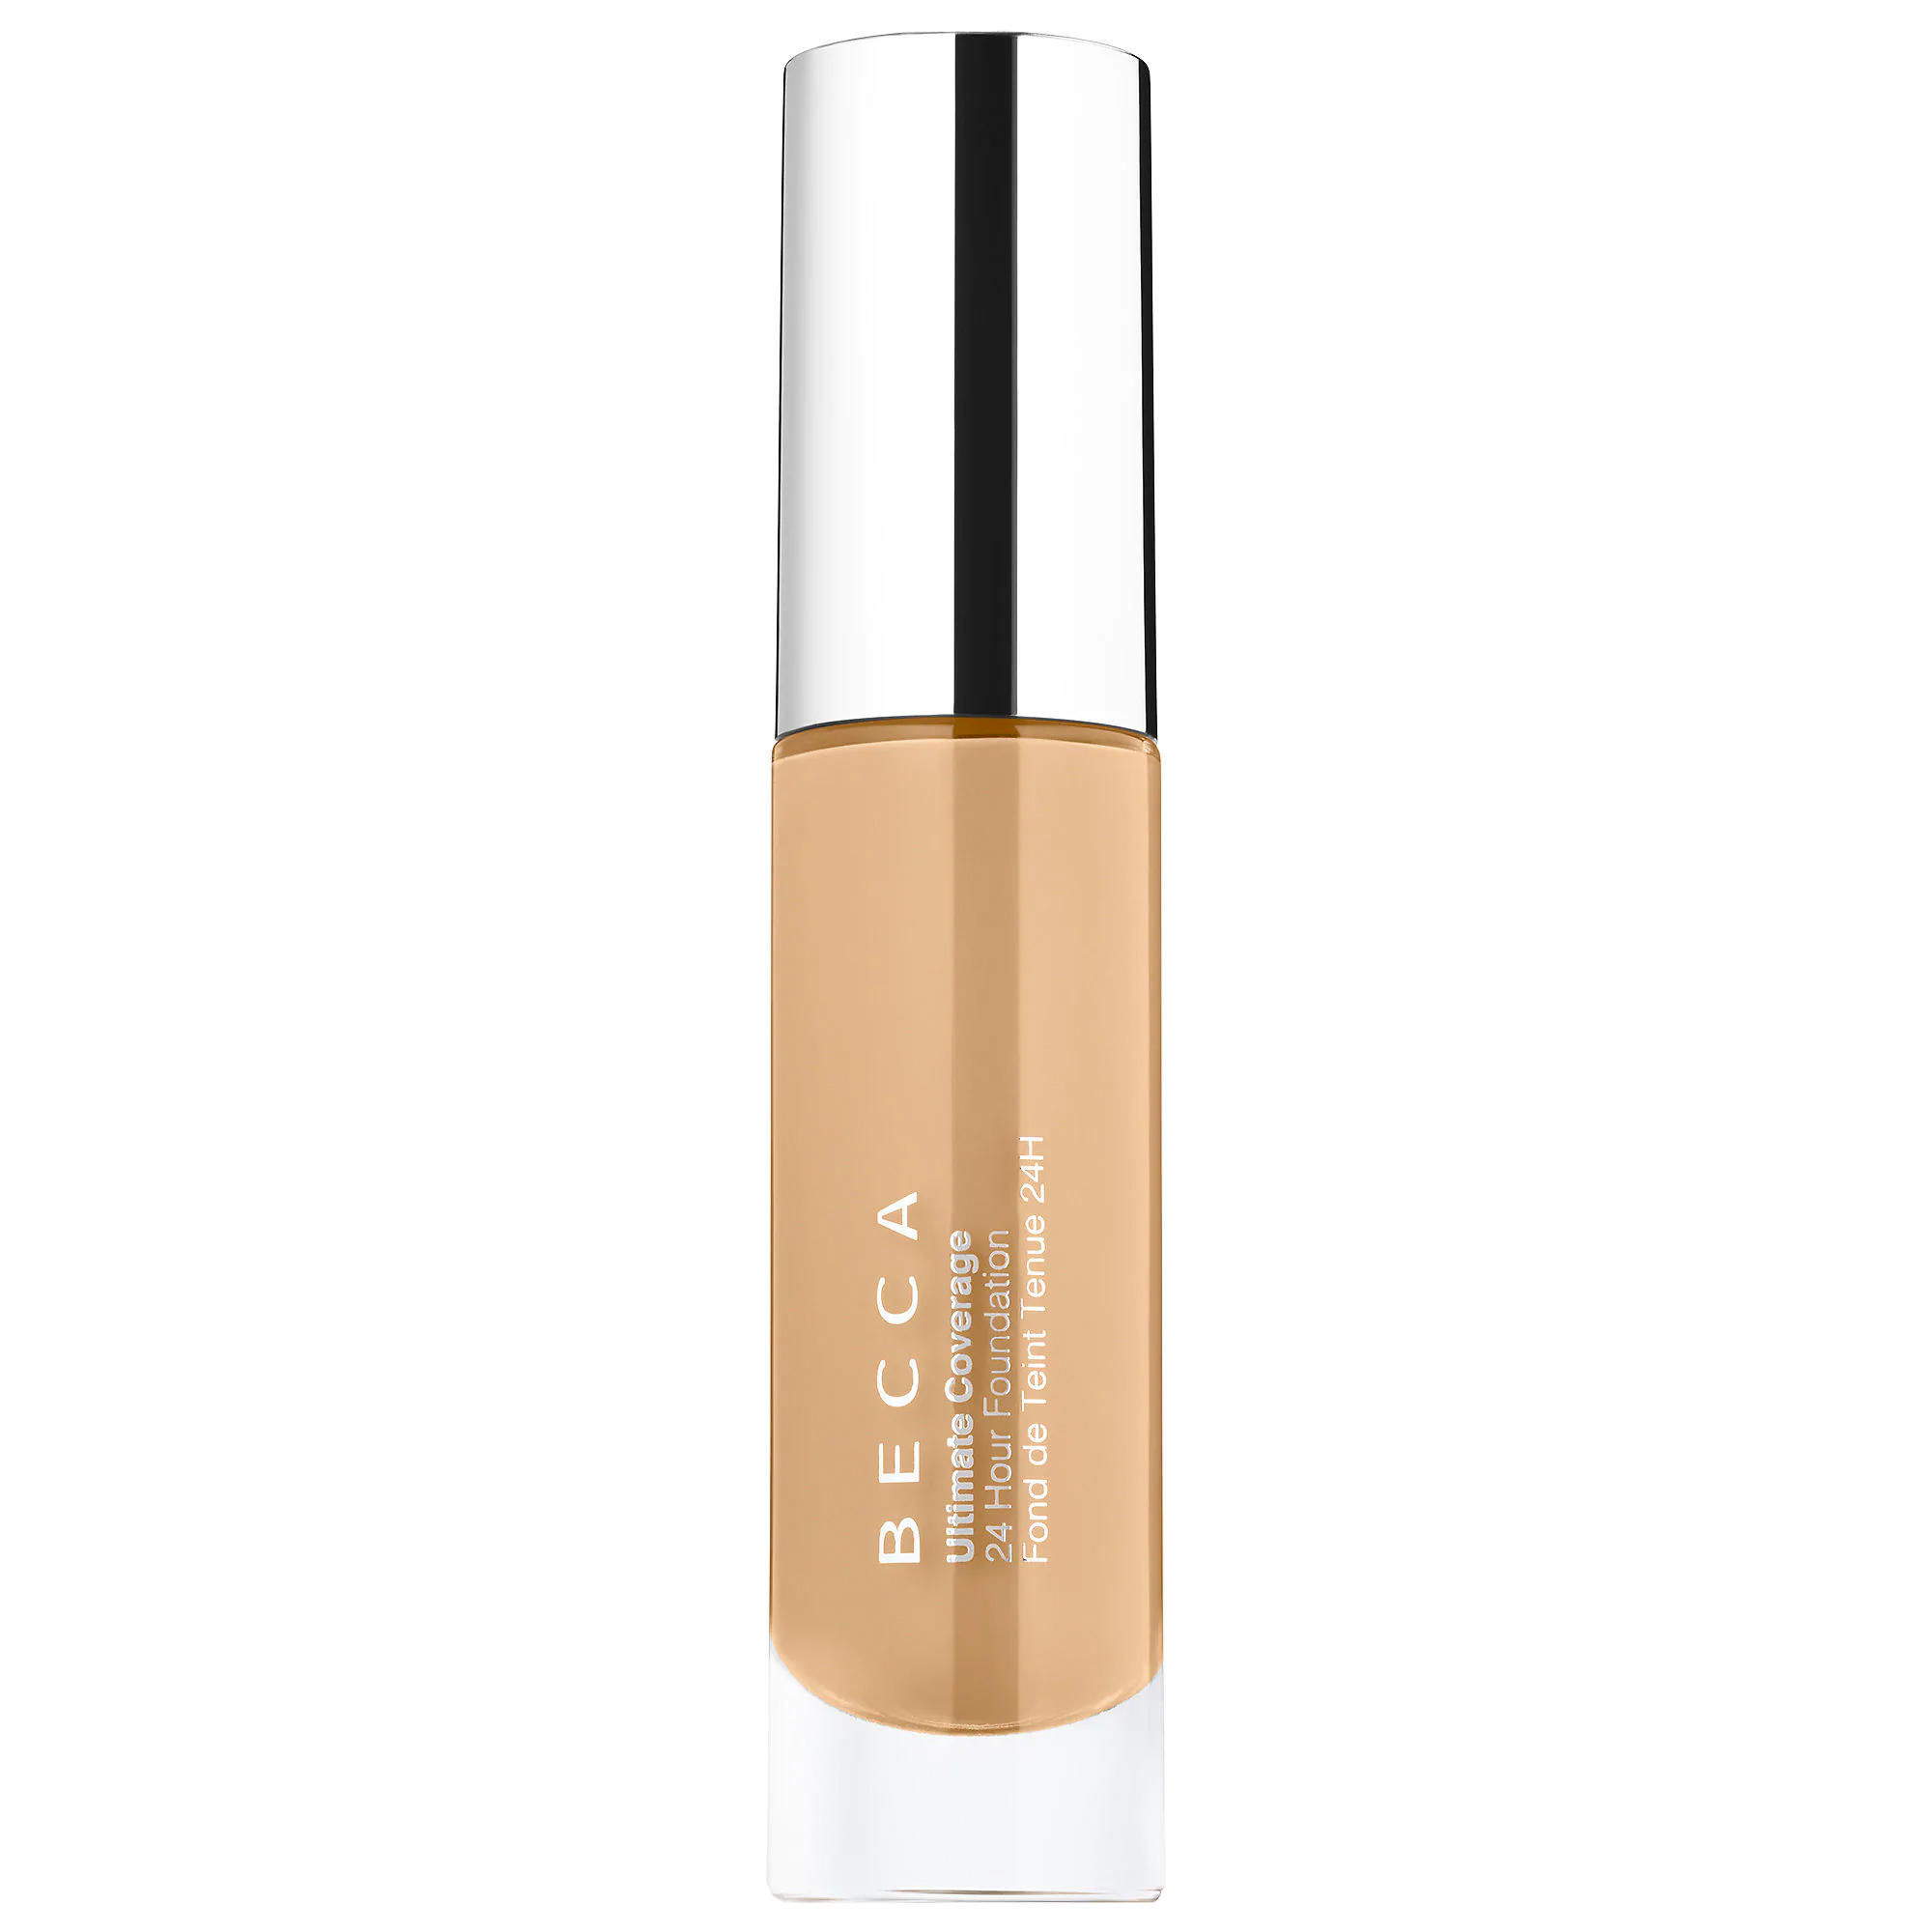 BECCA Ultimate Coverage 24 Hour Foundation Cashmere